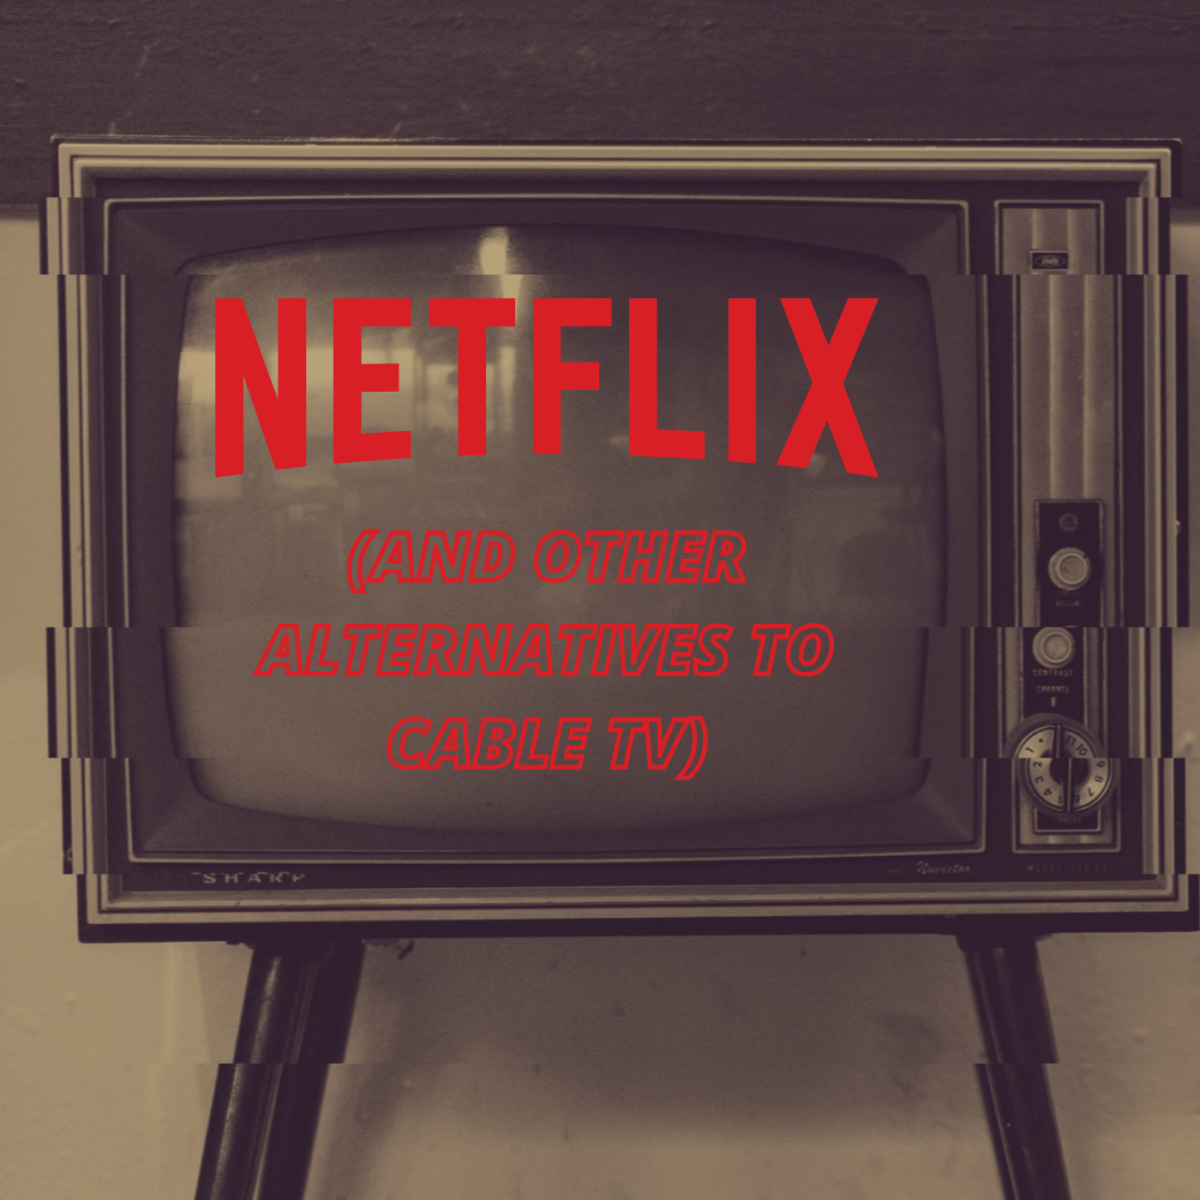 10 Great Video Streaming Platforms (Cable TV Alternatives)